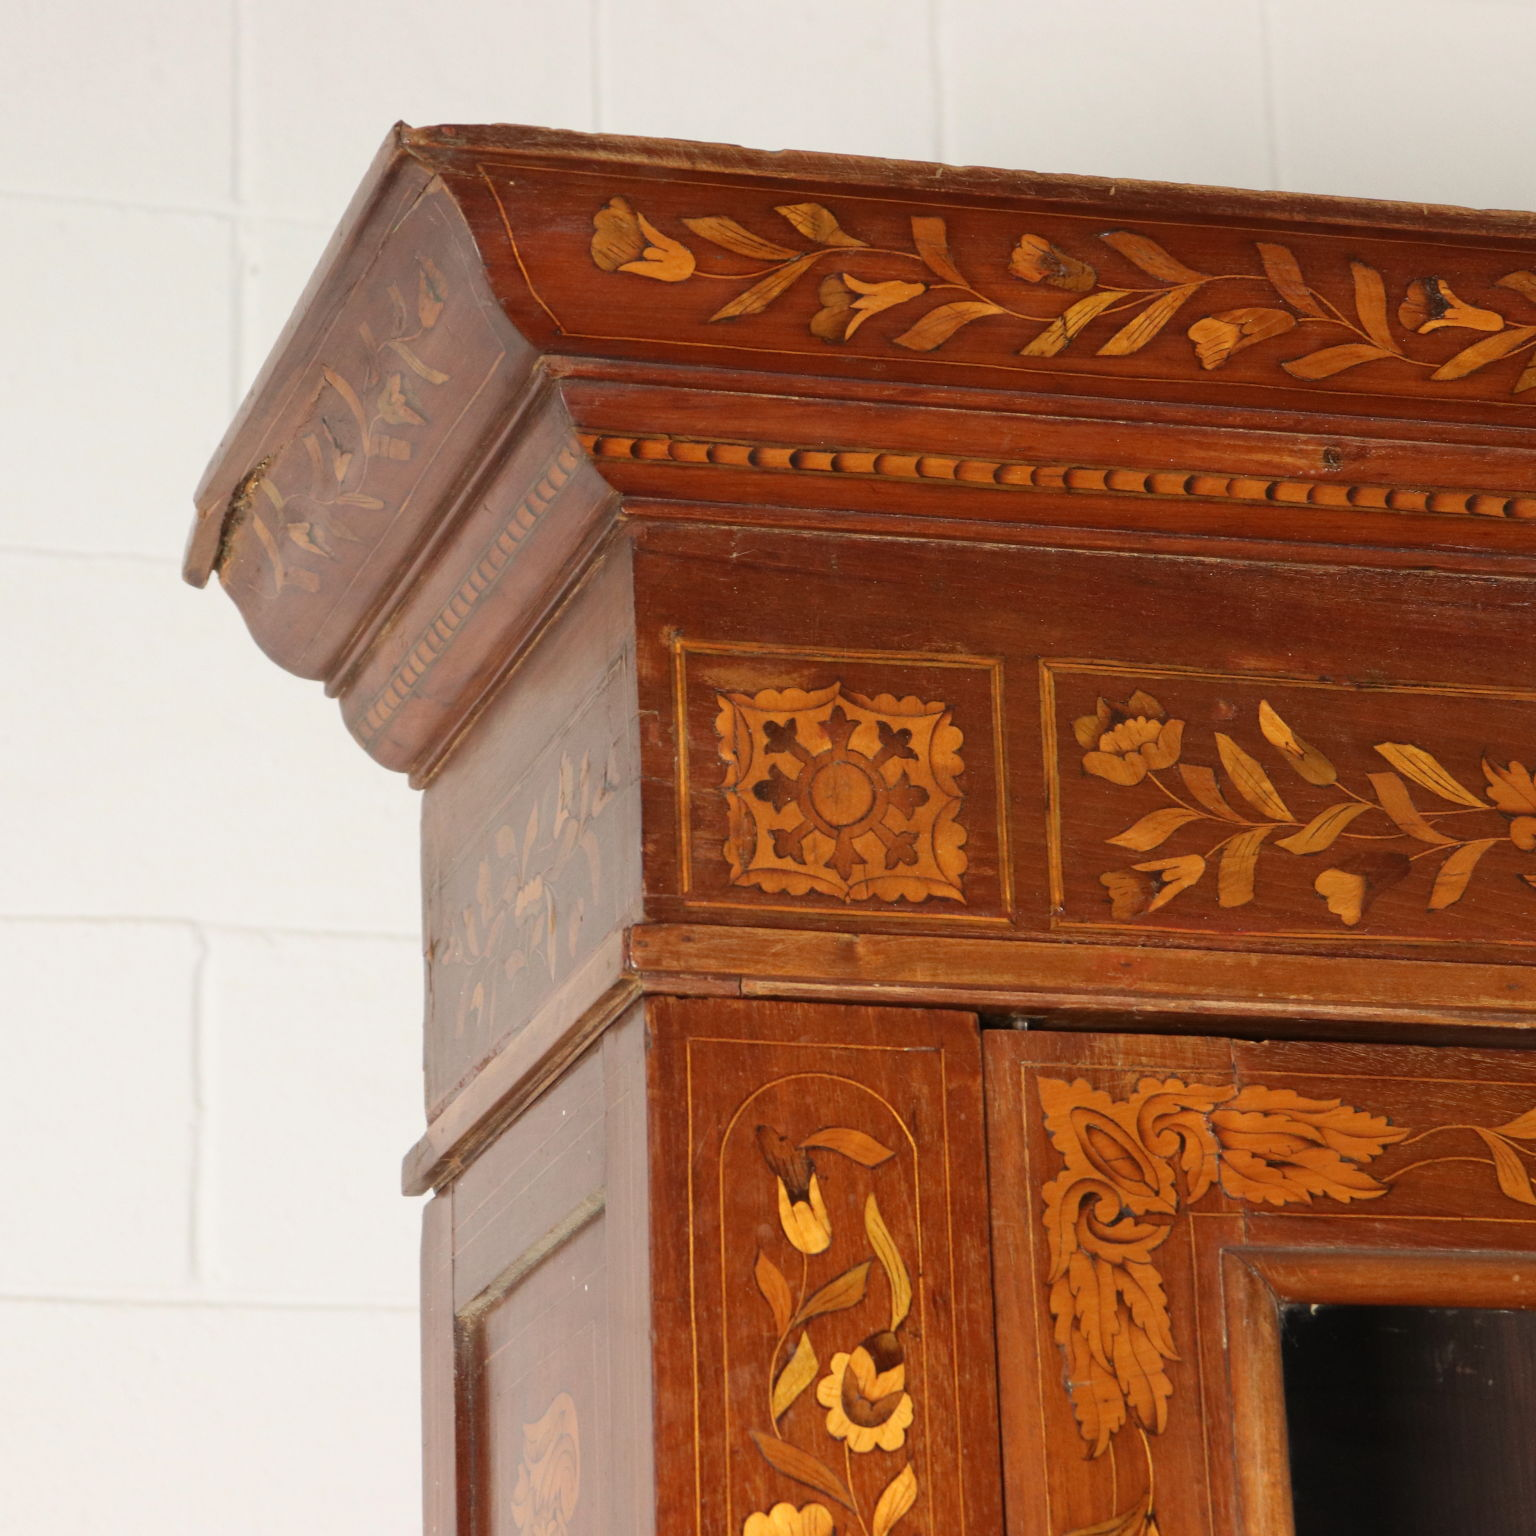 Large Bookcase Maple Mahogany Glass Doors Italy 1800s Libraries And Shop Windows Antique Dimanoinmano It